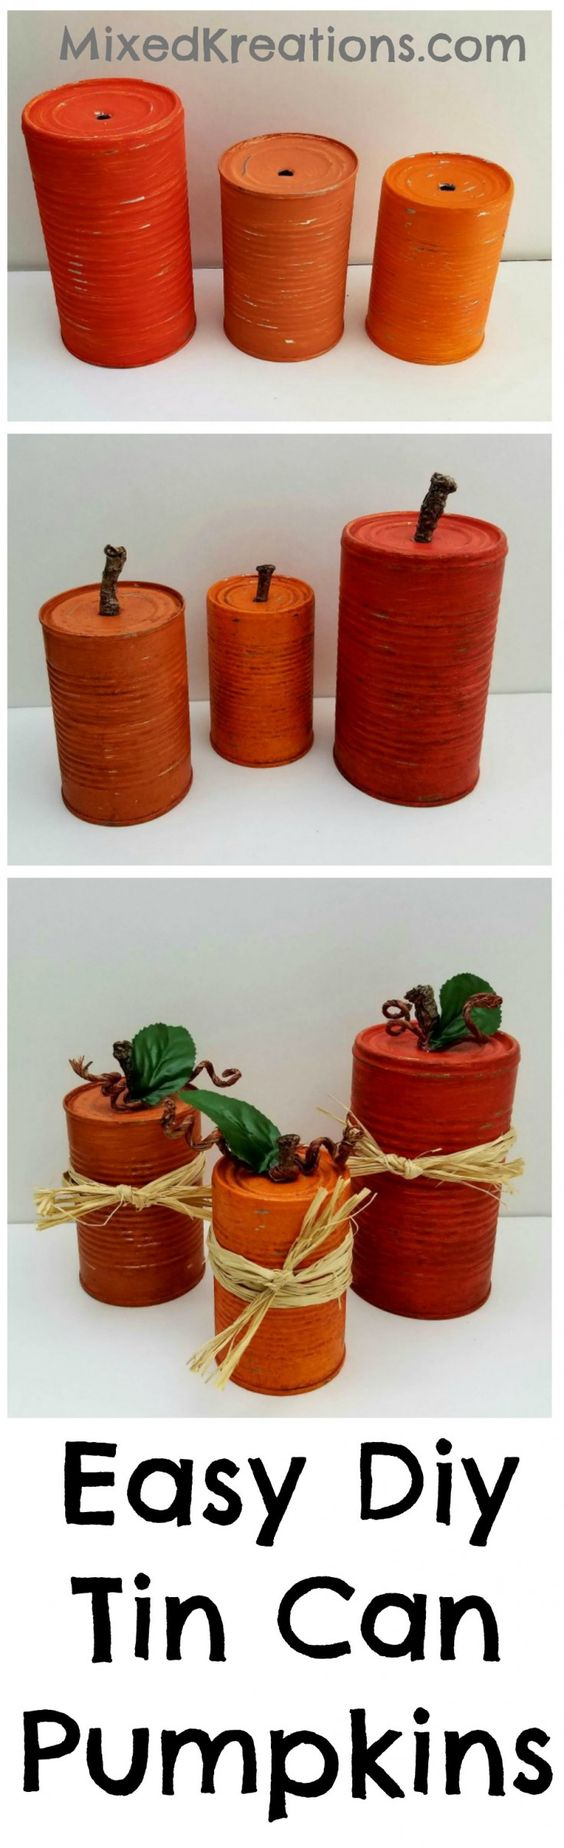 Easy Diy Tin Can Pumpkins.